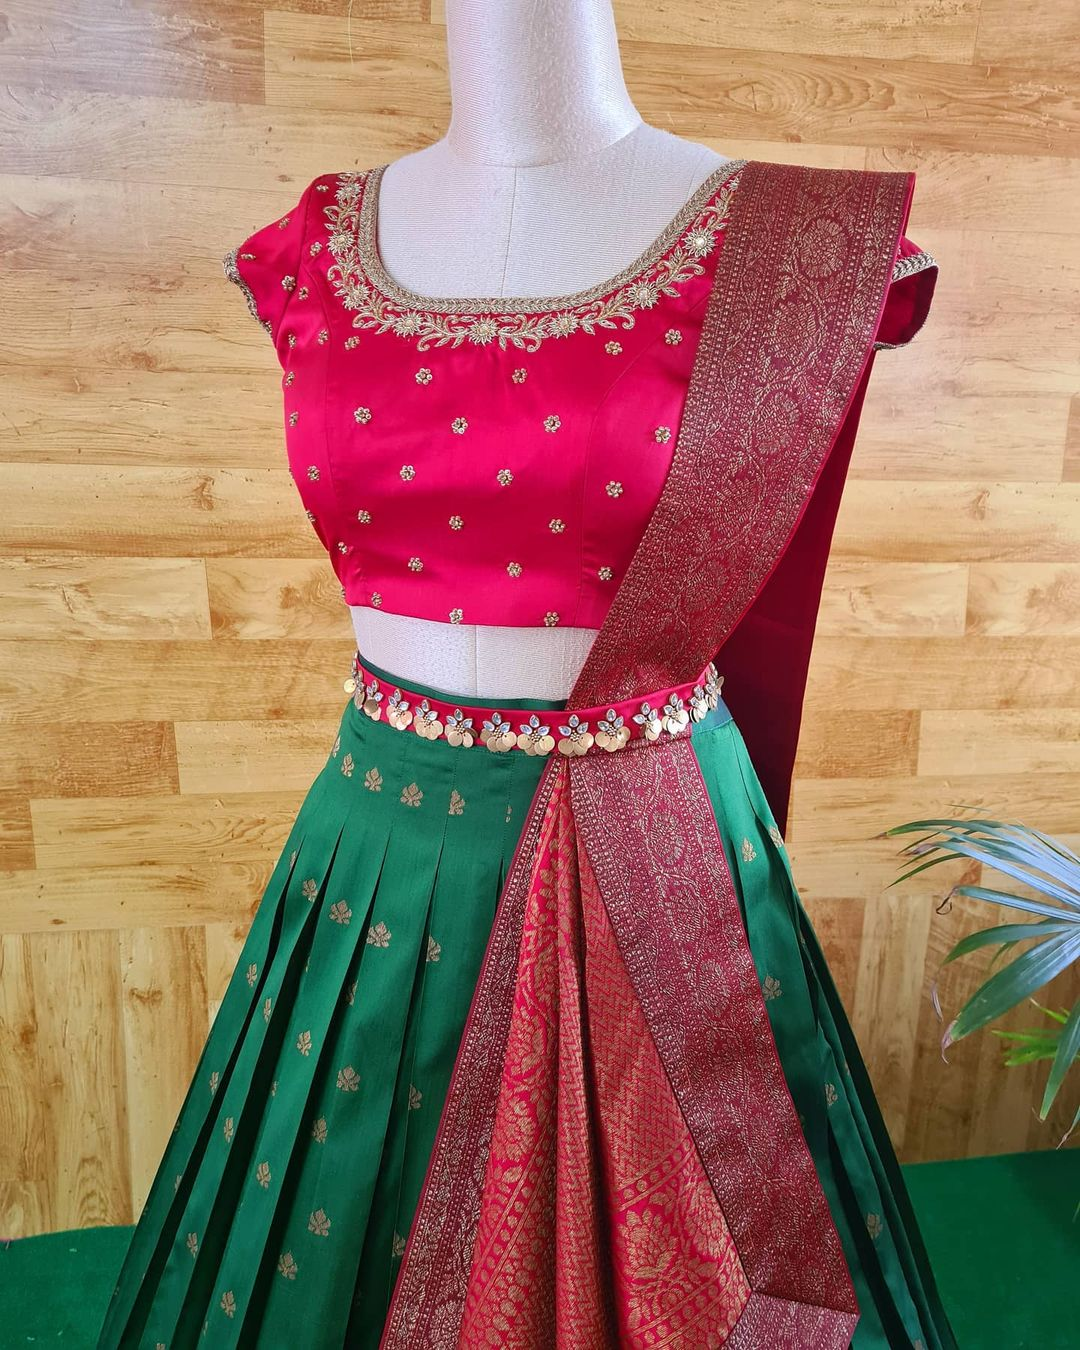 Redefine occasion wear with this Pre draped and stitched duppata on a crop top and skirt. 2021-04-02